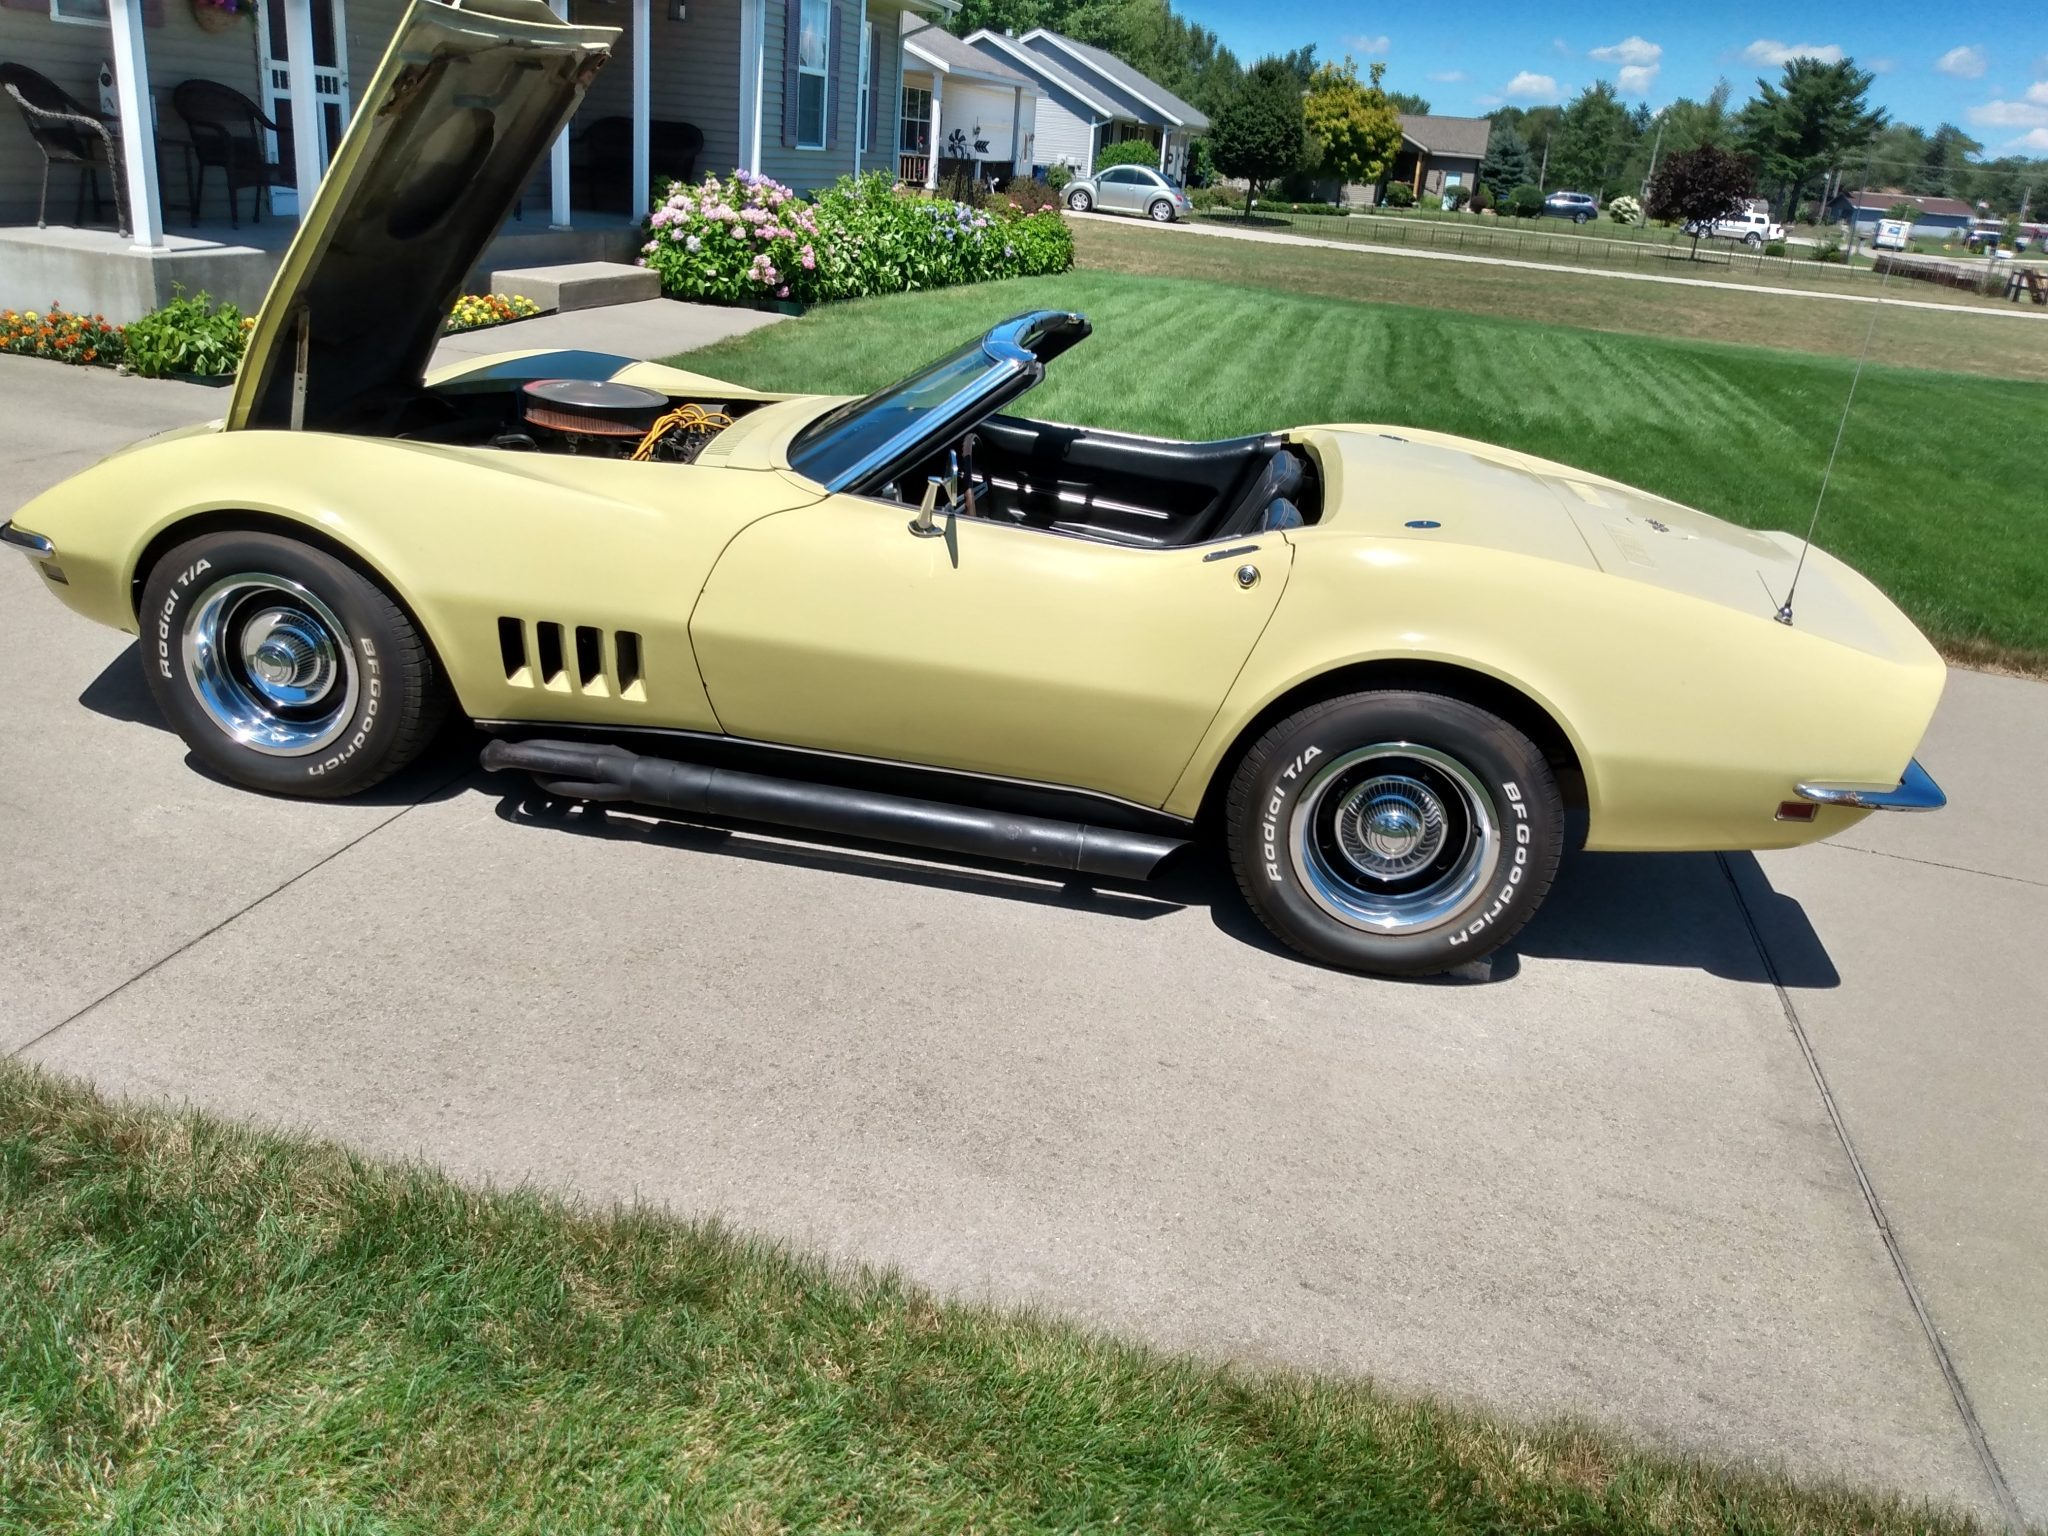 FOR SALE: A 1968 Corvette Convertible.